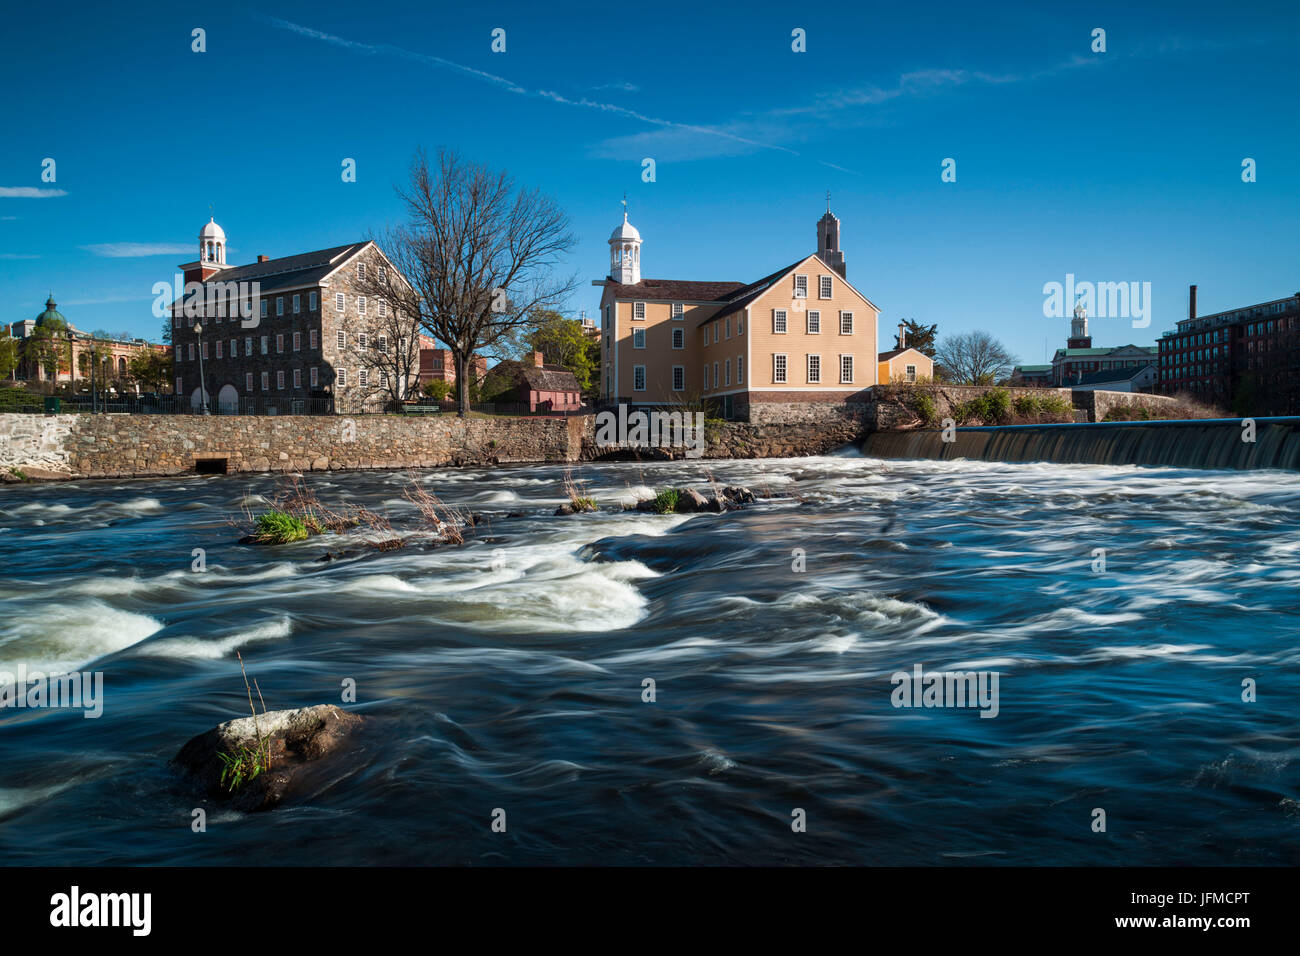 Spinning Mill Stock Photos & Spinning Mill Stock Images - Alamy